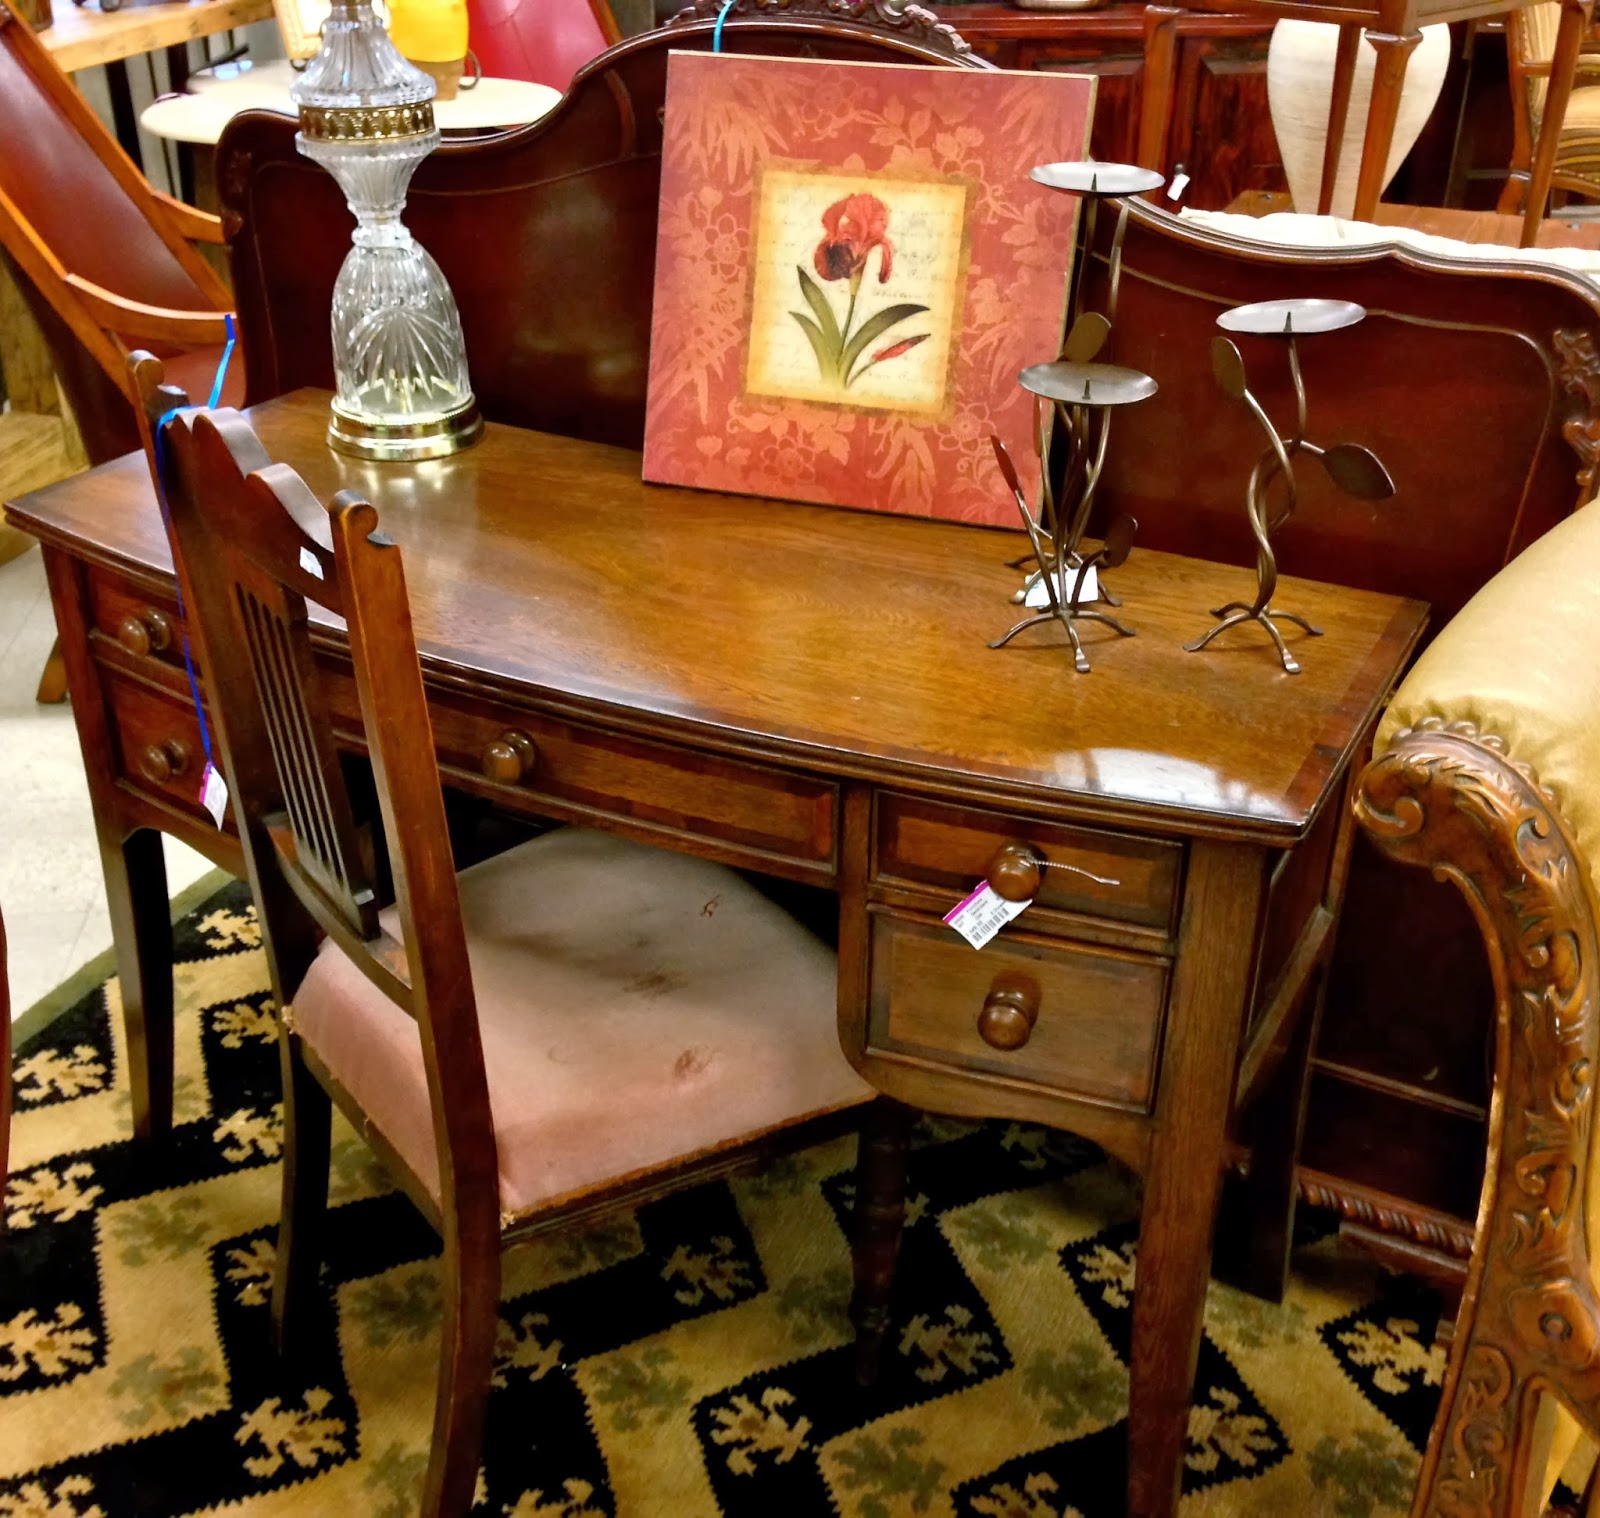 Atlanta furniture consignment store  best price furniture atlanta   eco friendly furniture consignment. How to Sell Furniture and Home Decor Items on Consignment    Hot